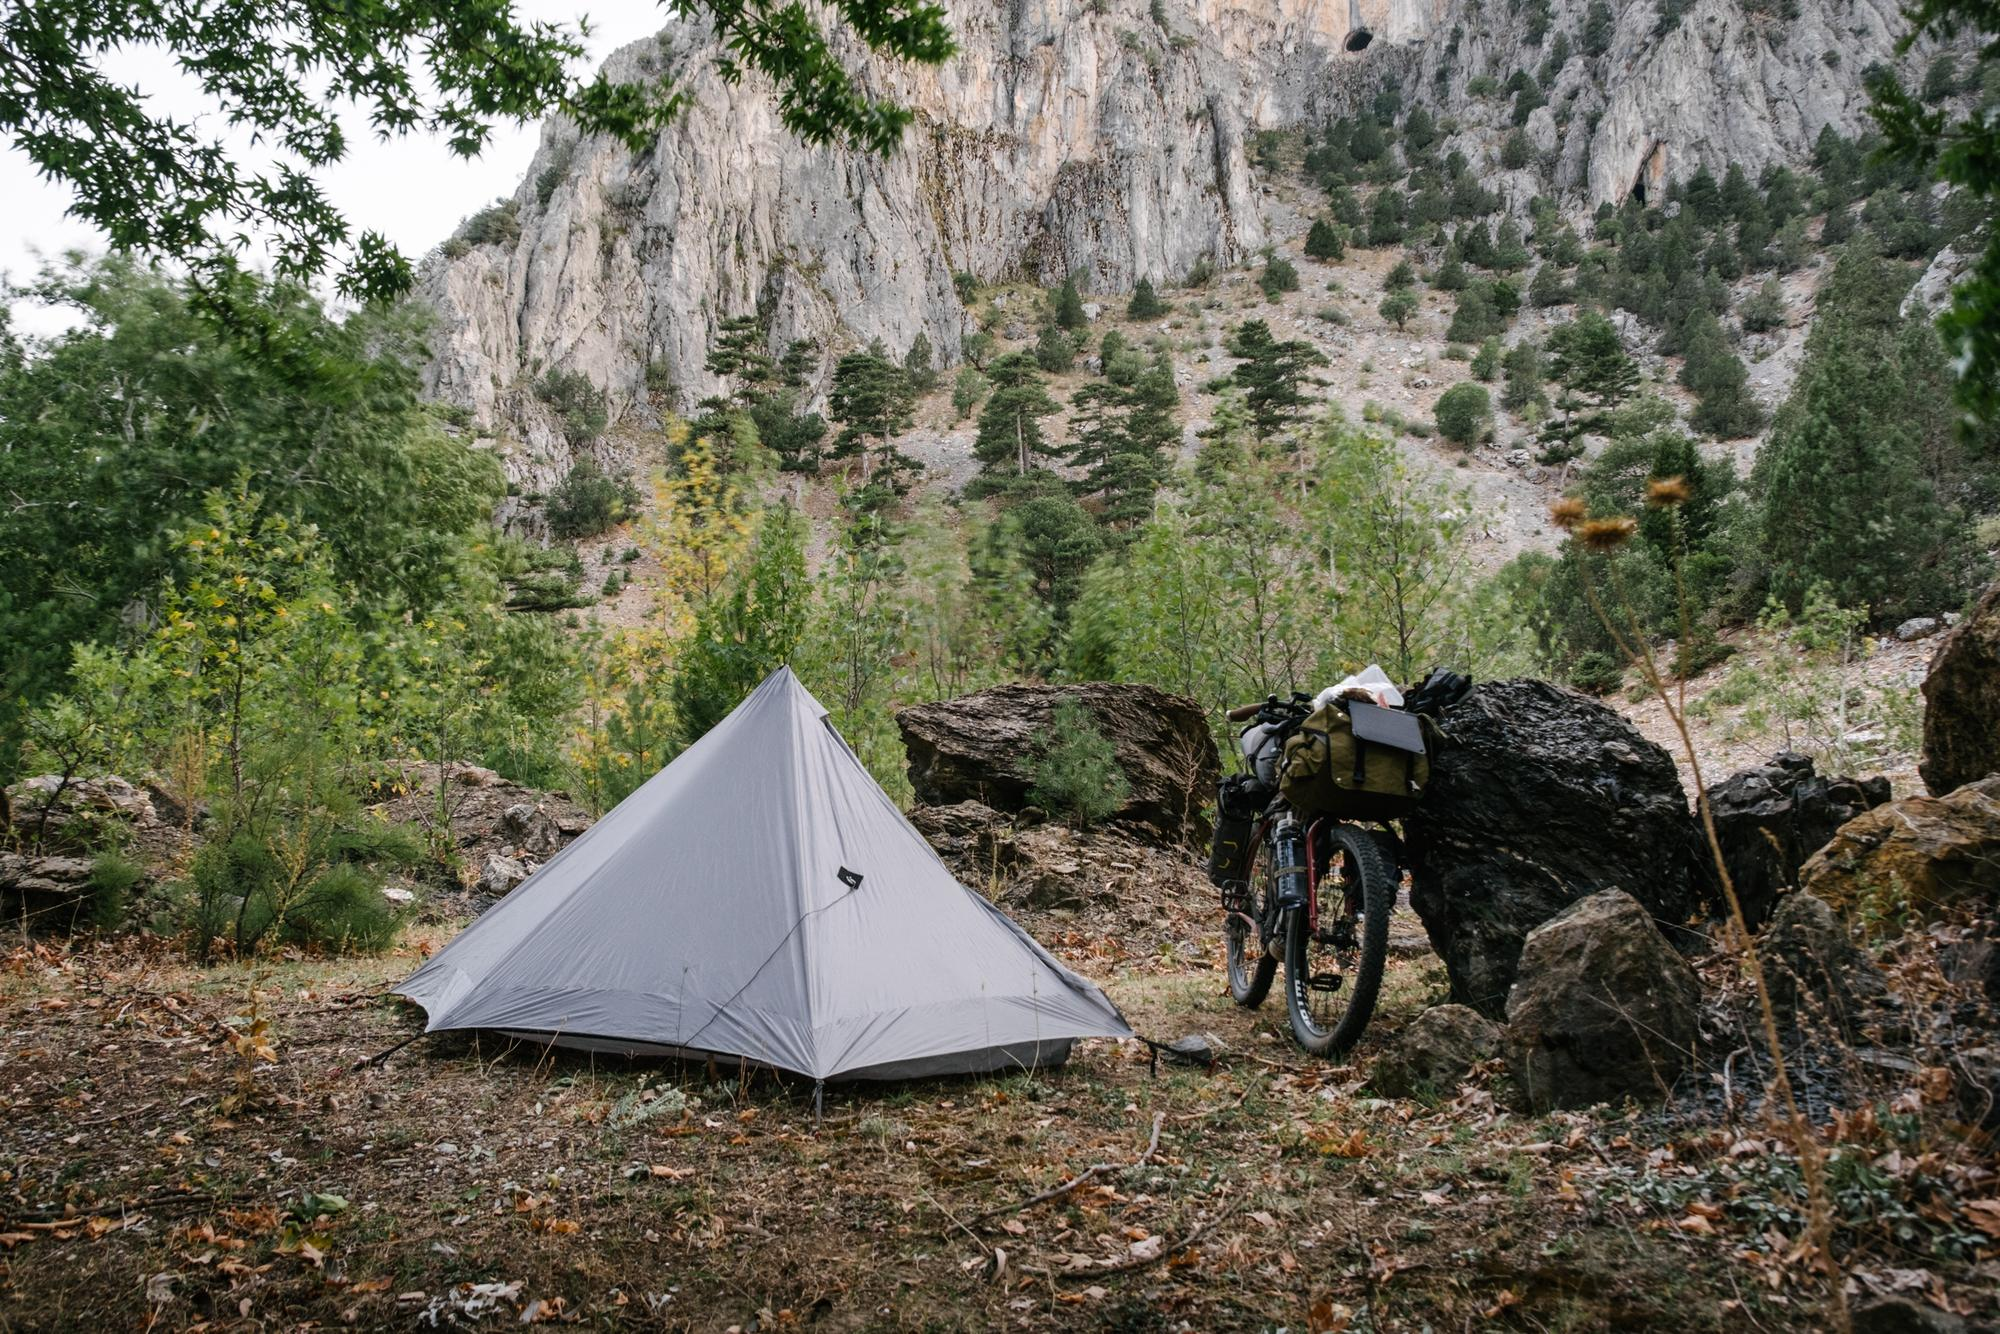 Camping under the cliffs